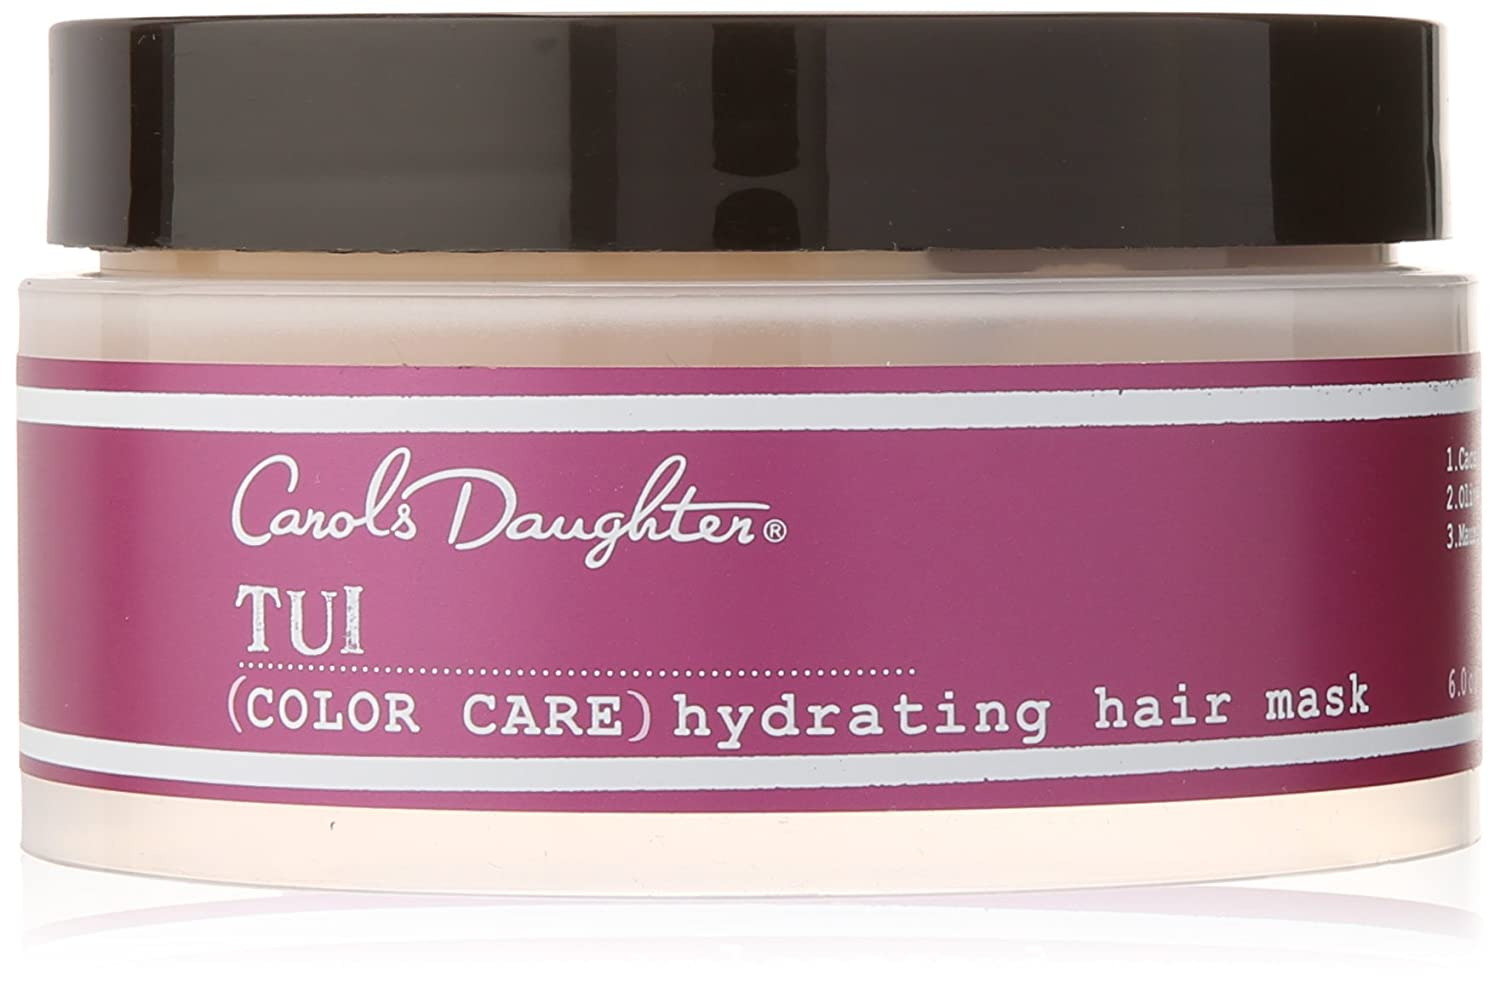 Carol's Daughter Tui Color Care Hydrating Hair Mask for Unisex-6-Ounce Carol's Daughter 178349